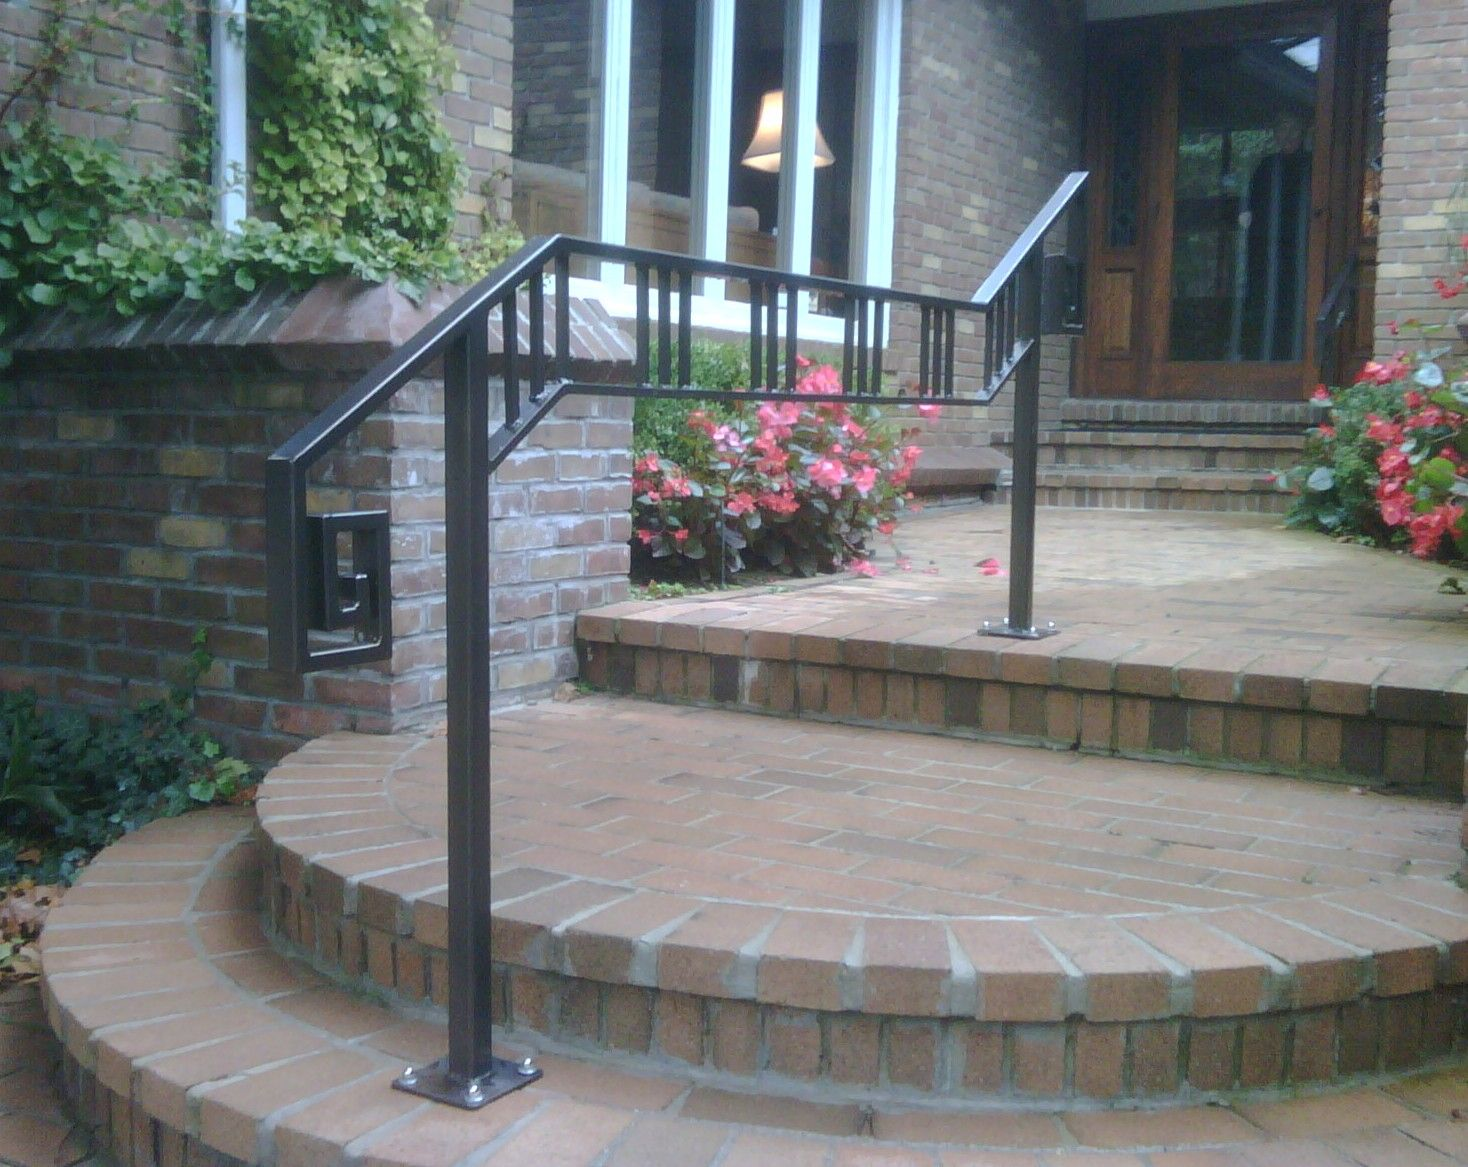 Wrought Iron Or Aluminum Railings Google Search | Iron Railings For Steps